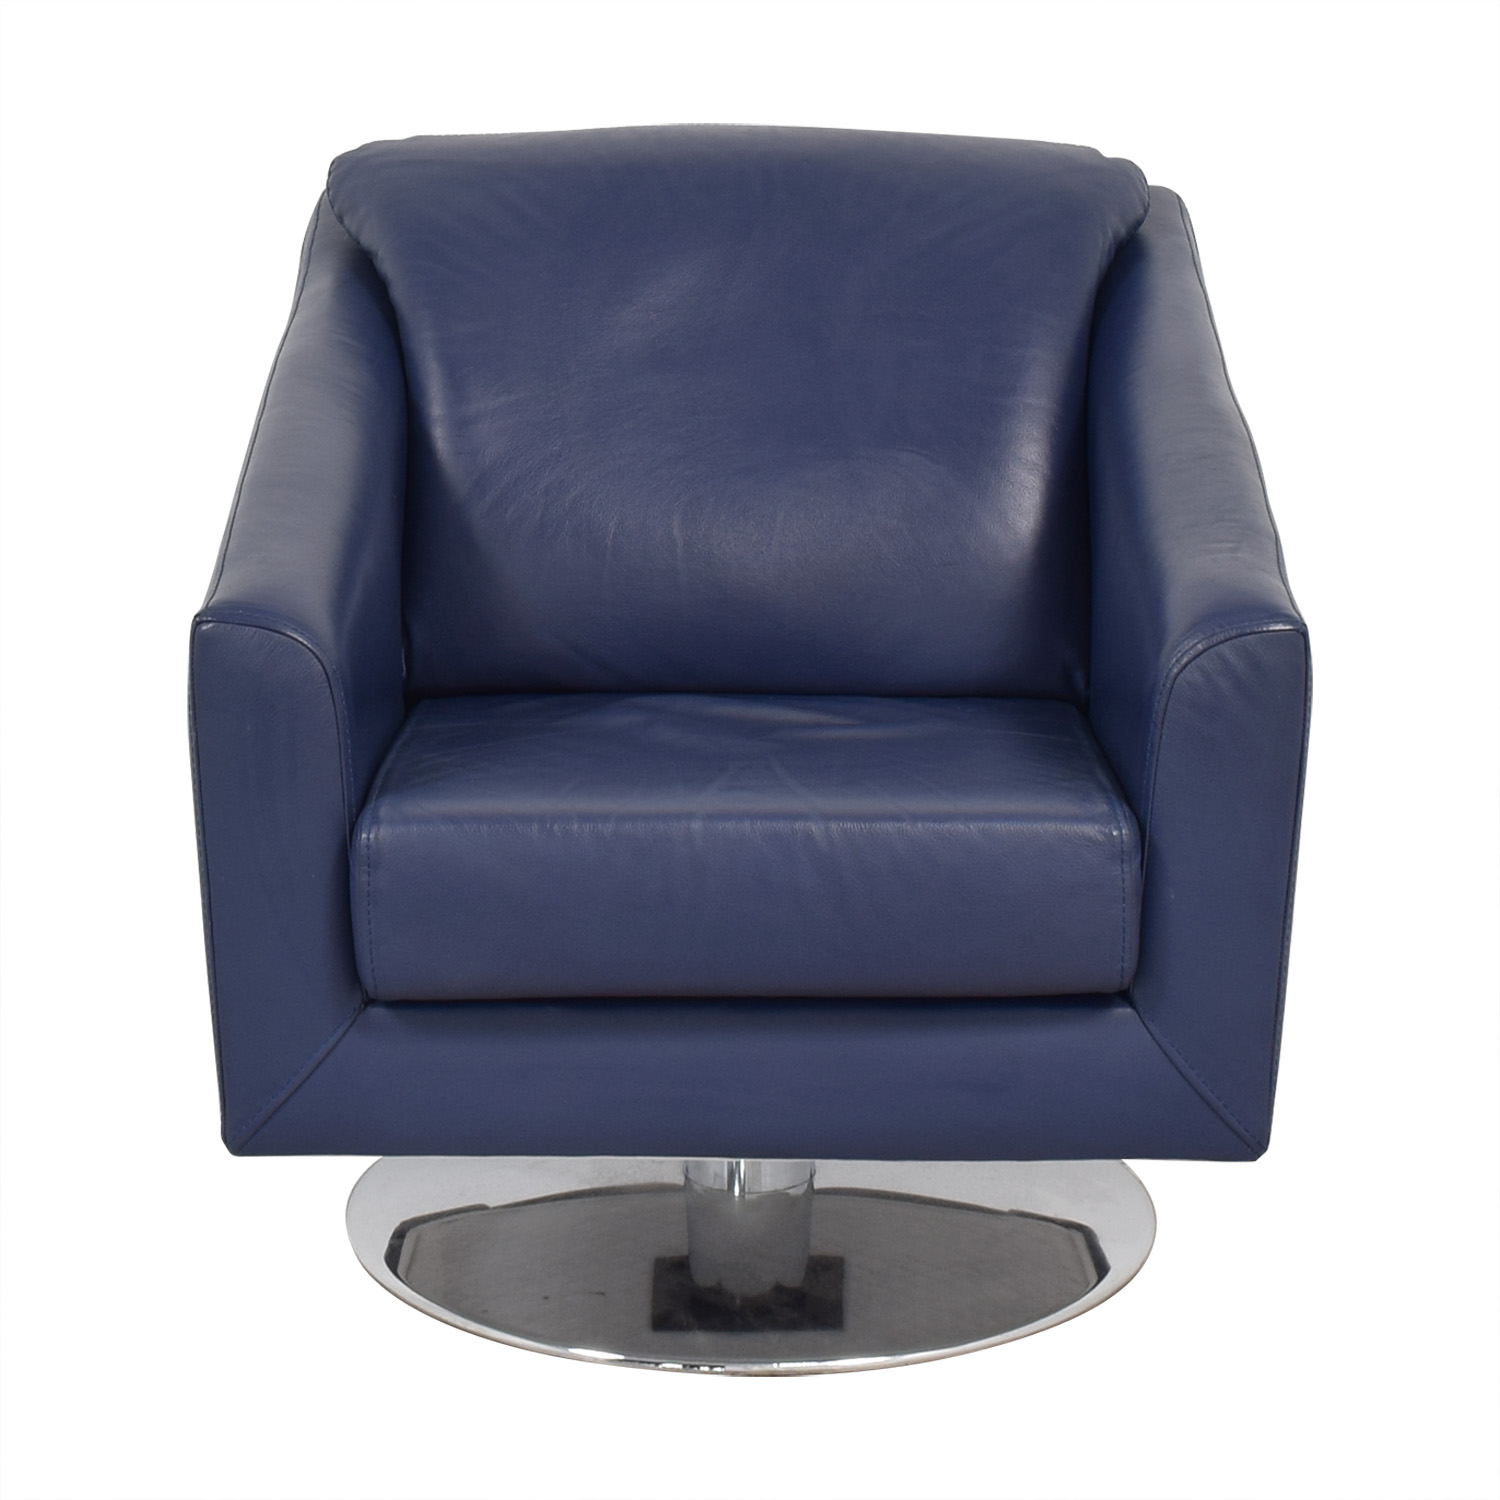 Lazzoni Lazzoni Ada Wing Chair on sale